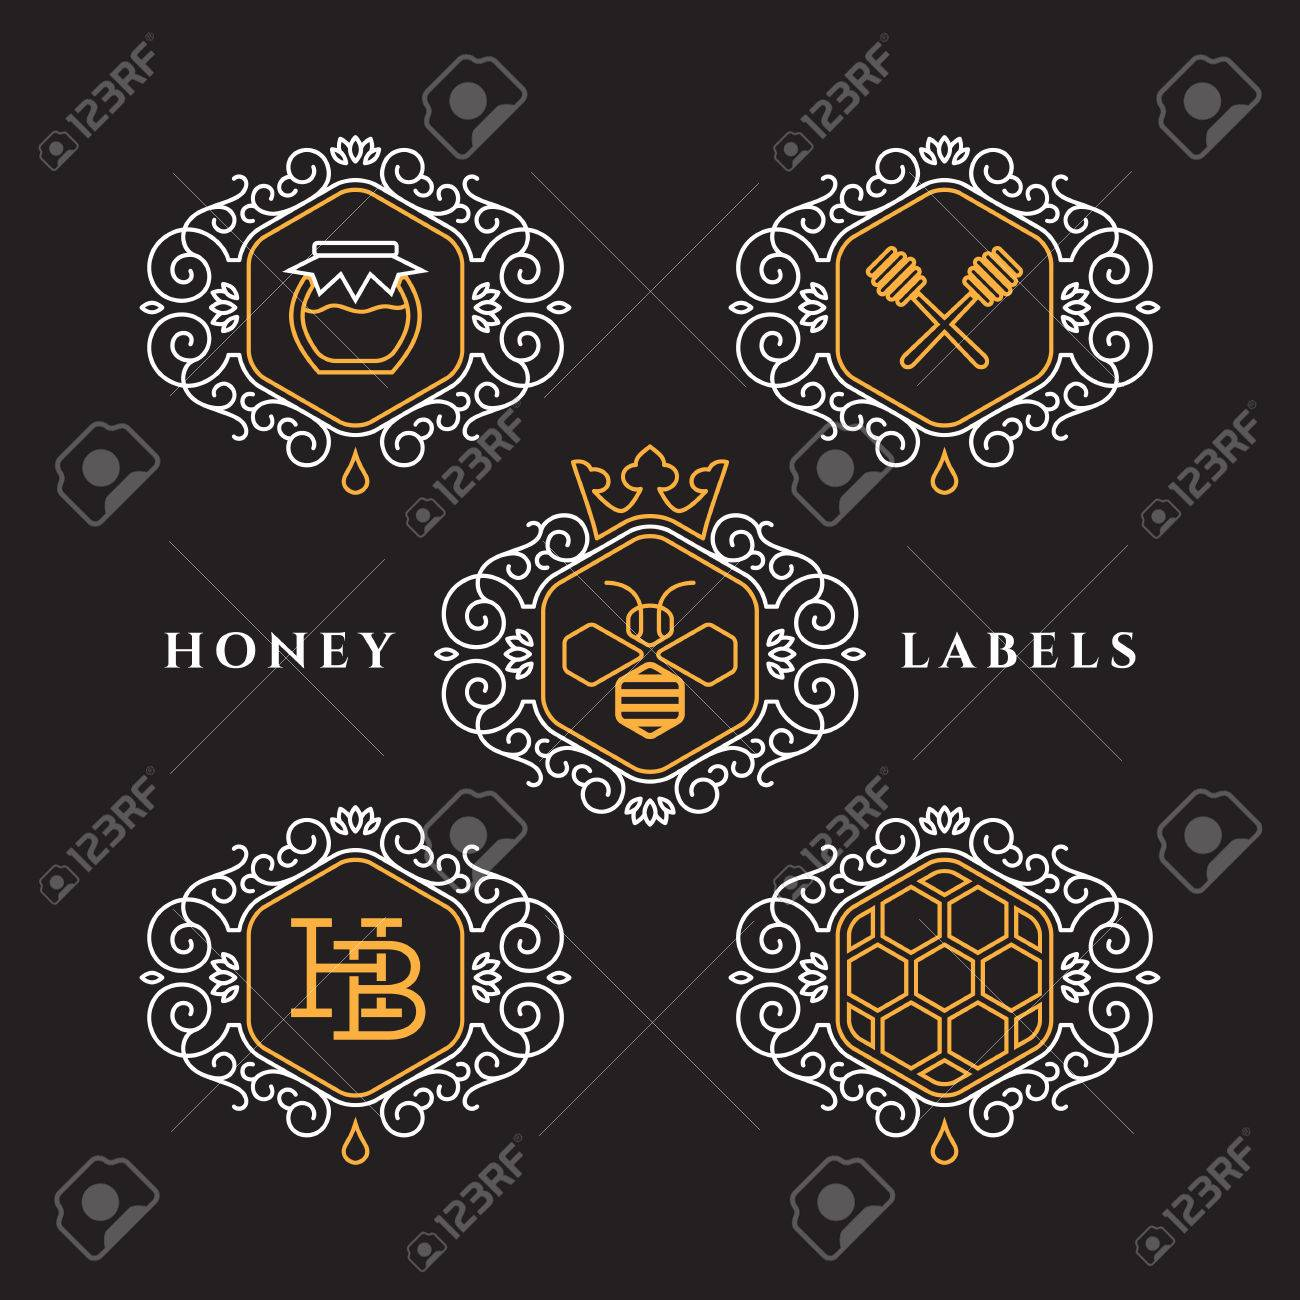 Set Of Templates Design For Honey Bee Labels With Frame In Outline ...